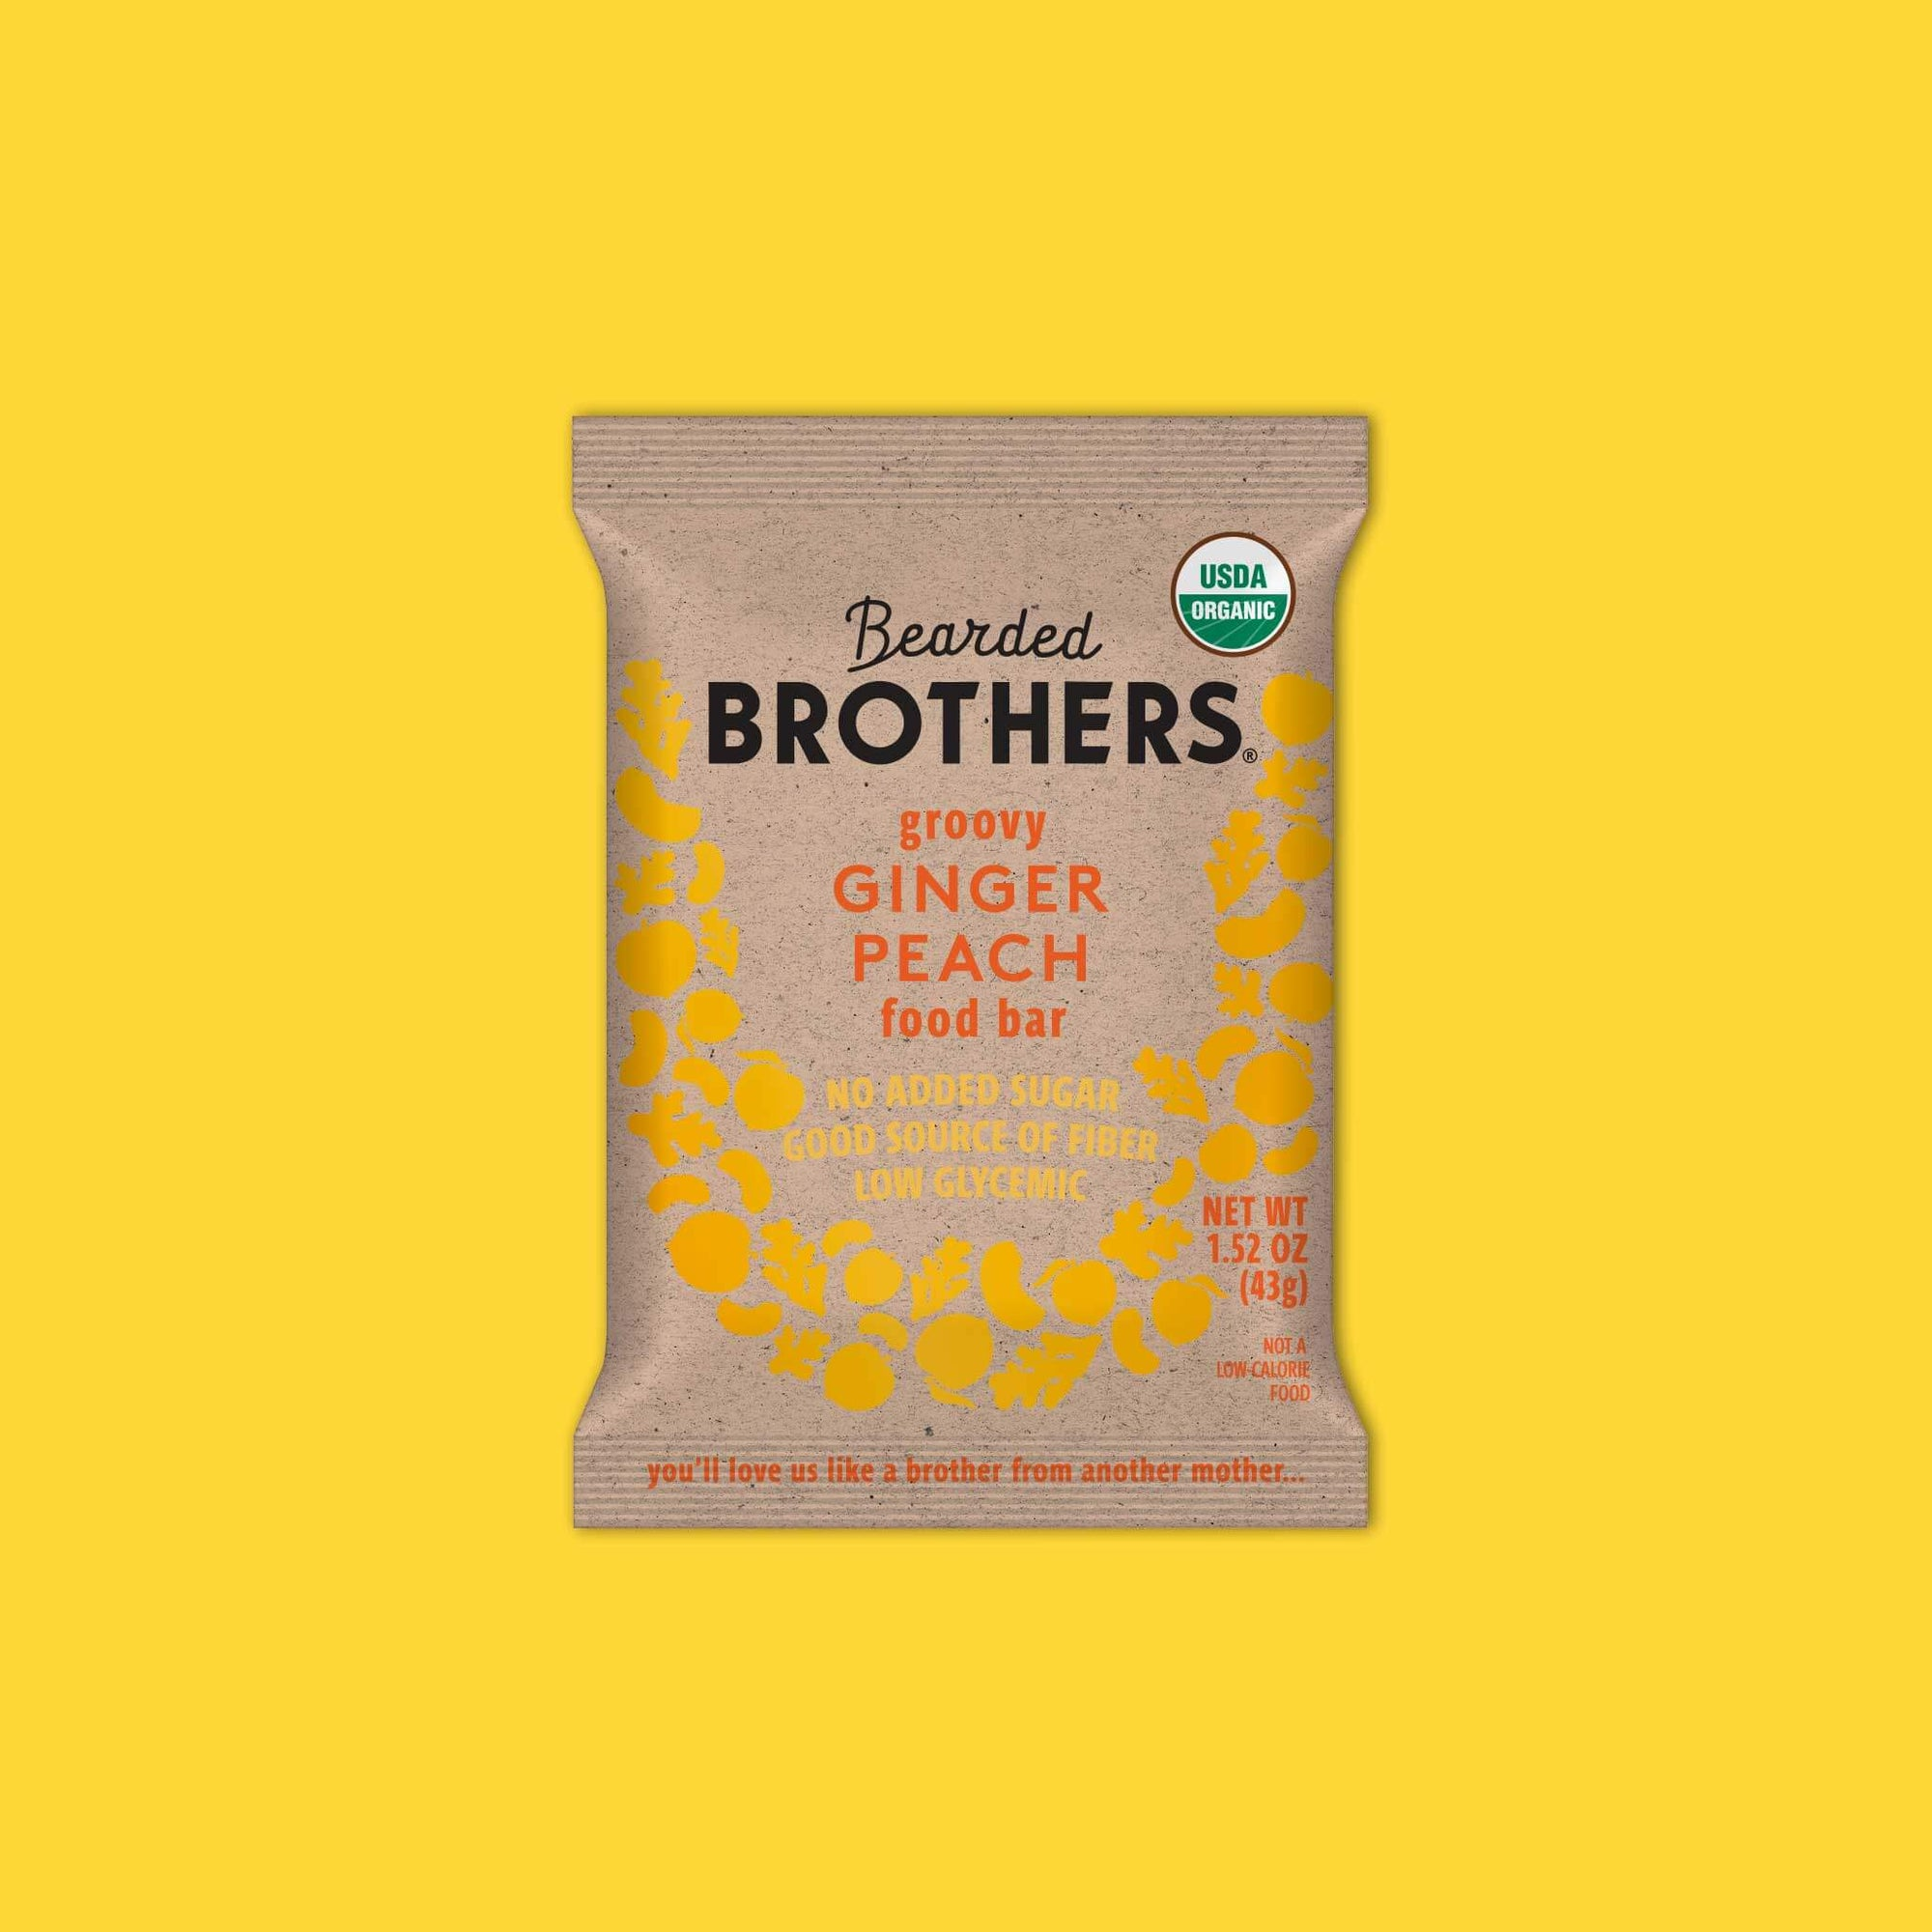 Groovy Ginger Peach - Bearded Brothers